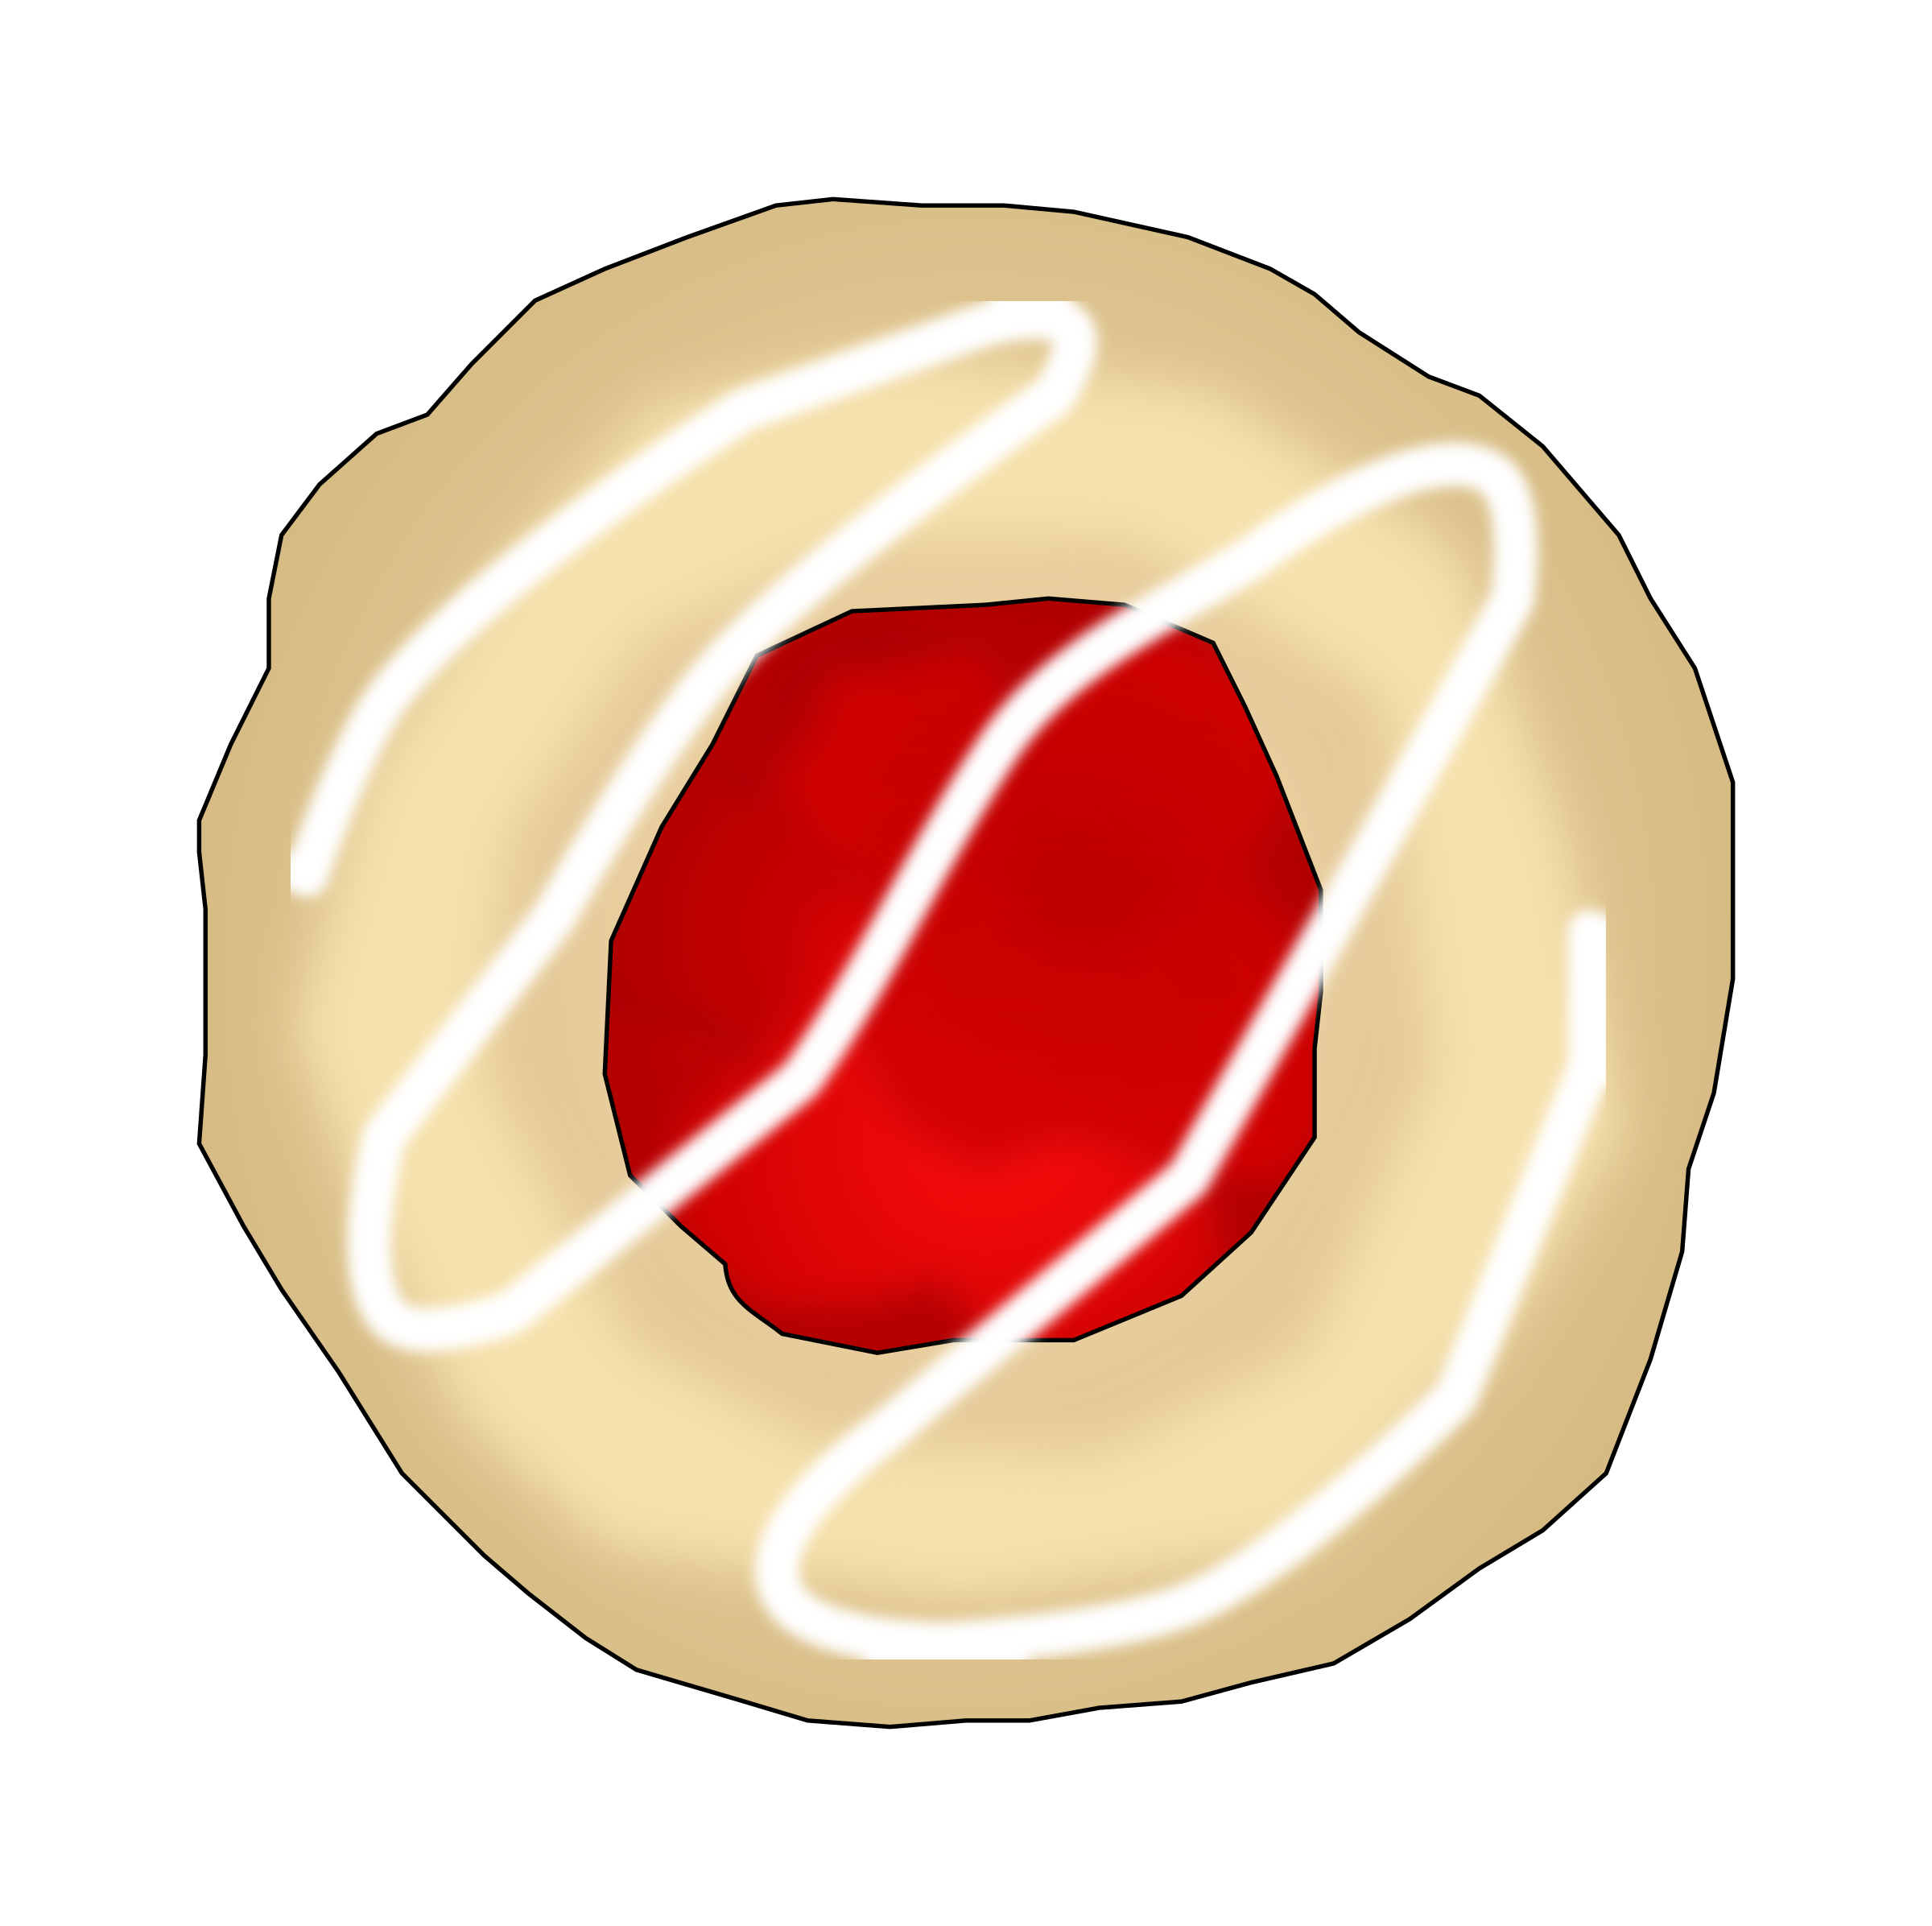 Strawberries clipart raspberry. Or strawberry thumbprint cookie